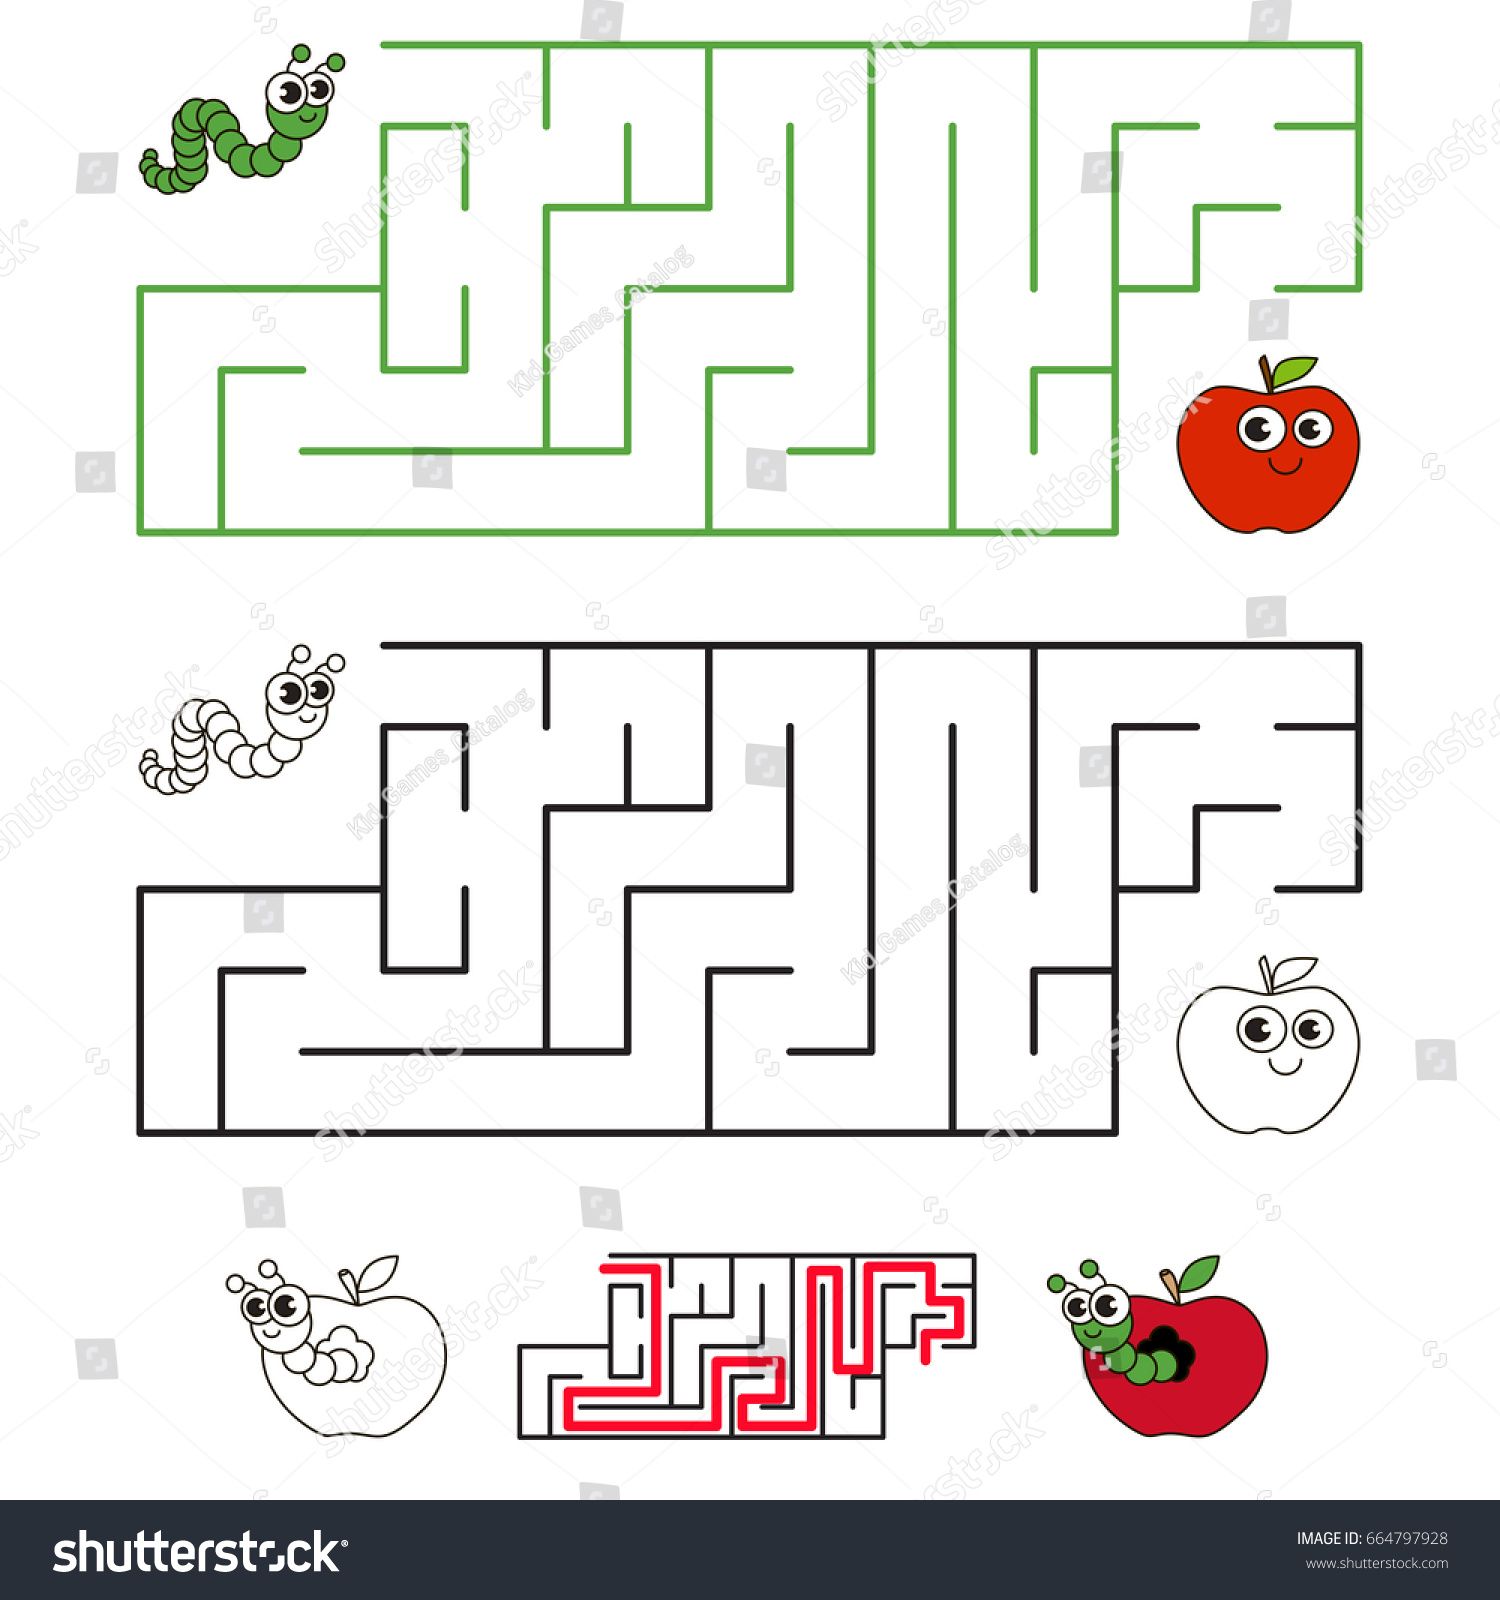 Apple Worm Pest Labyrinth Simple Horizontal Stock Vector